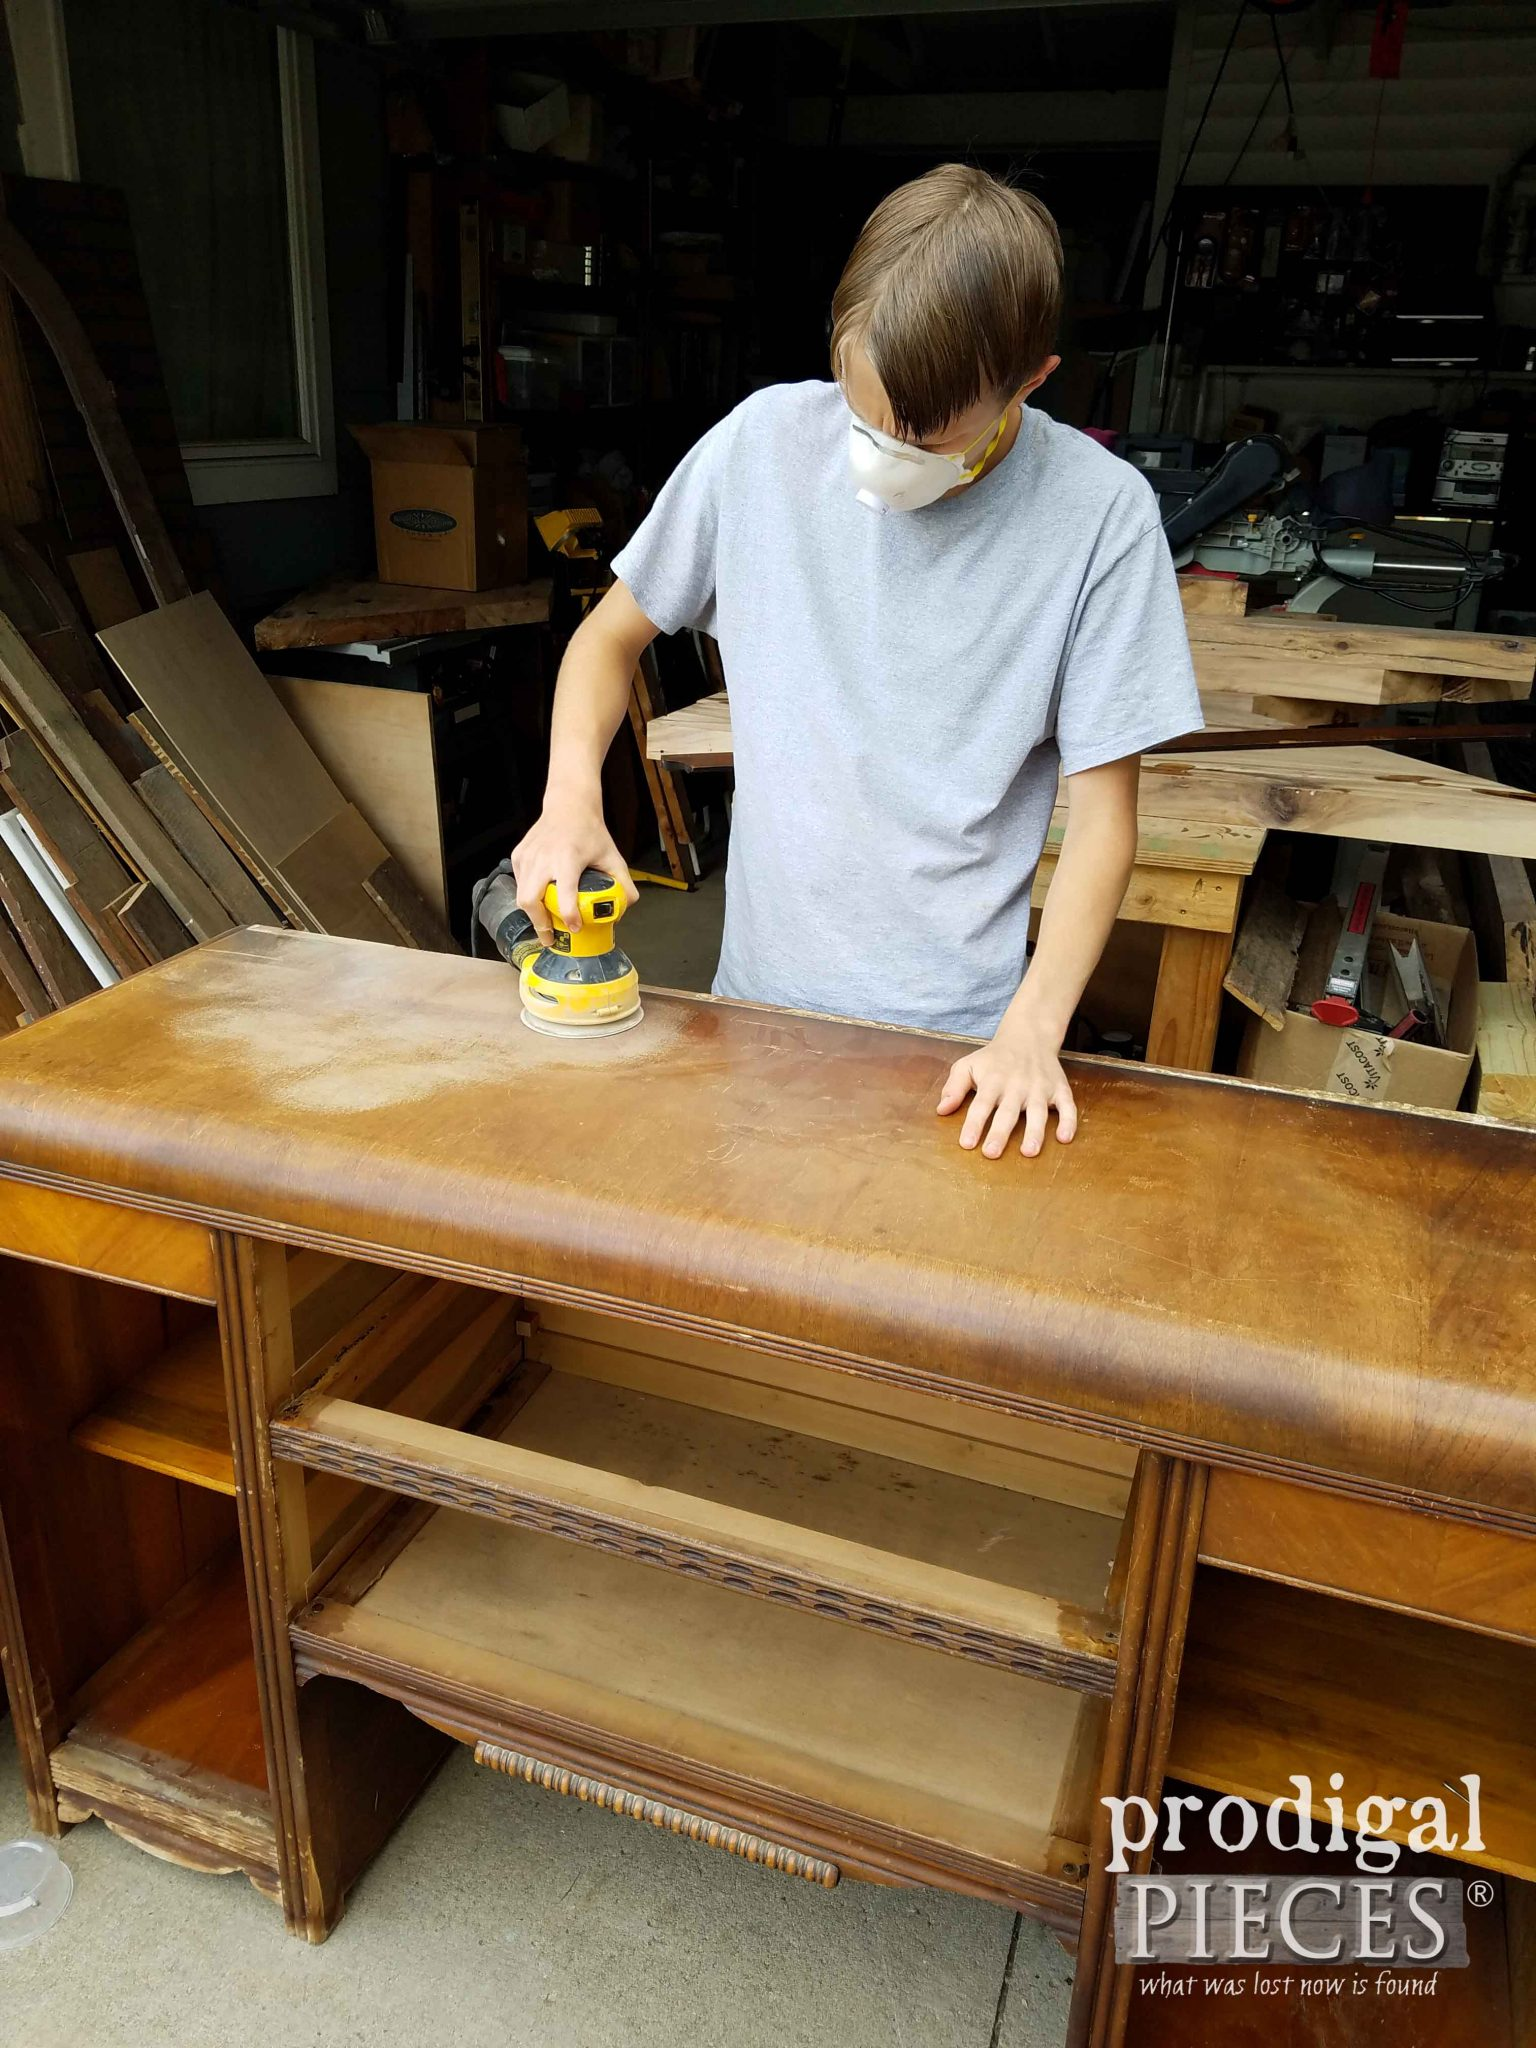 Young Man Sanding Art Decor Sideboard | prodigalpieces.com